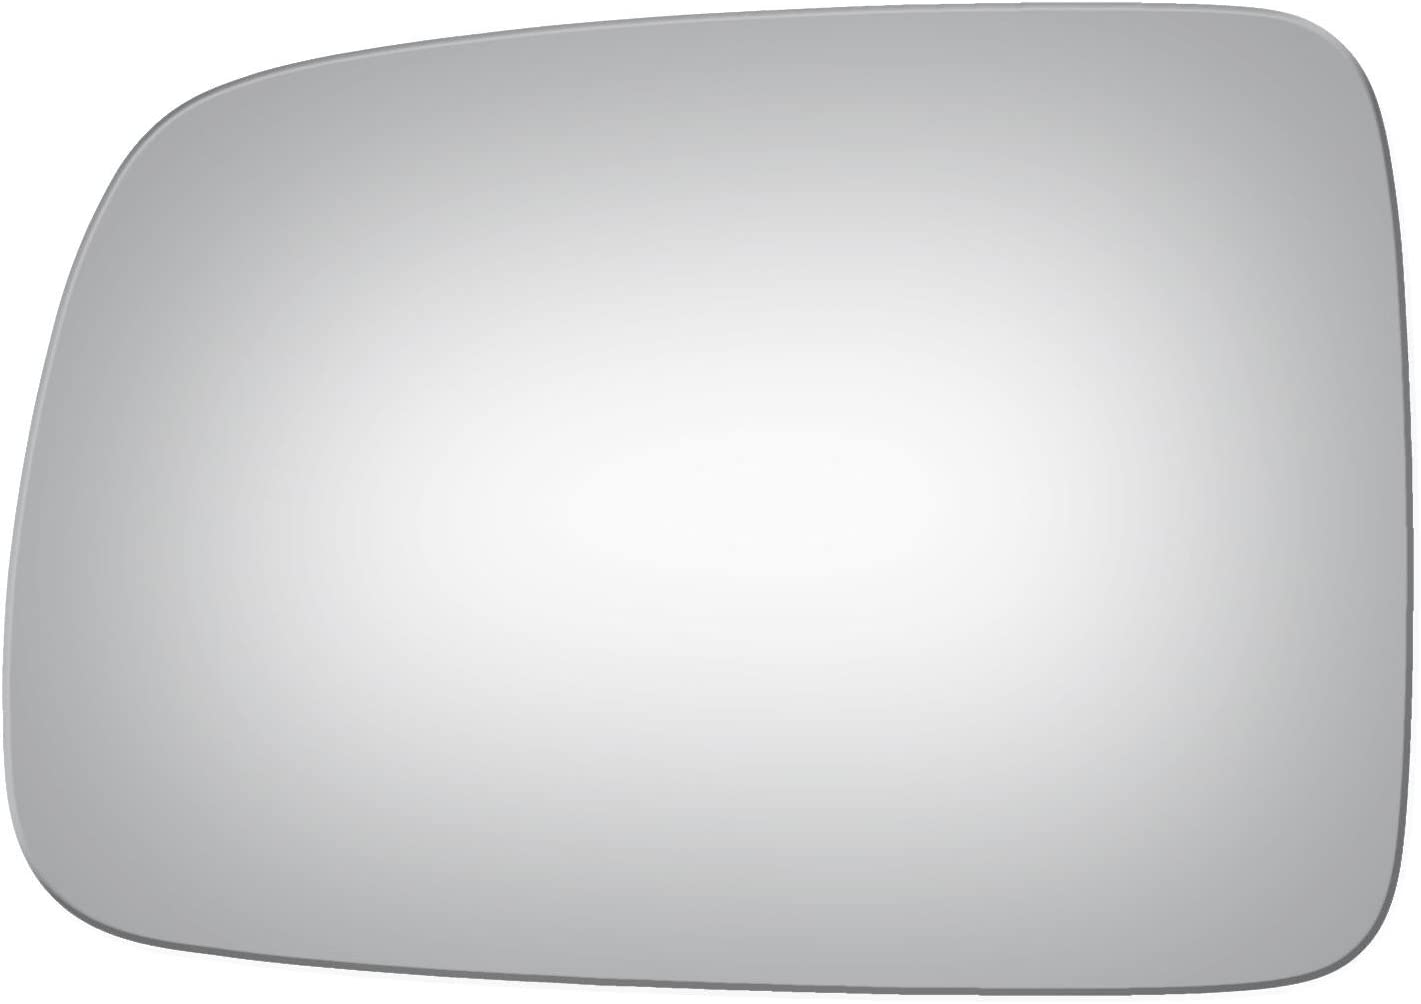 Burco 4141 Driver Side Replacement for New products, world's highest quality popular! Glass HONDA CR-V Mirror Gifts